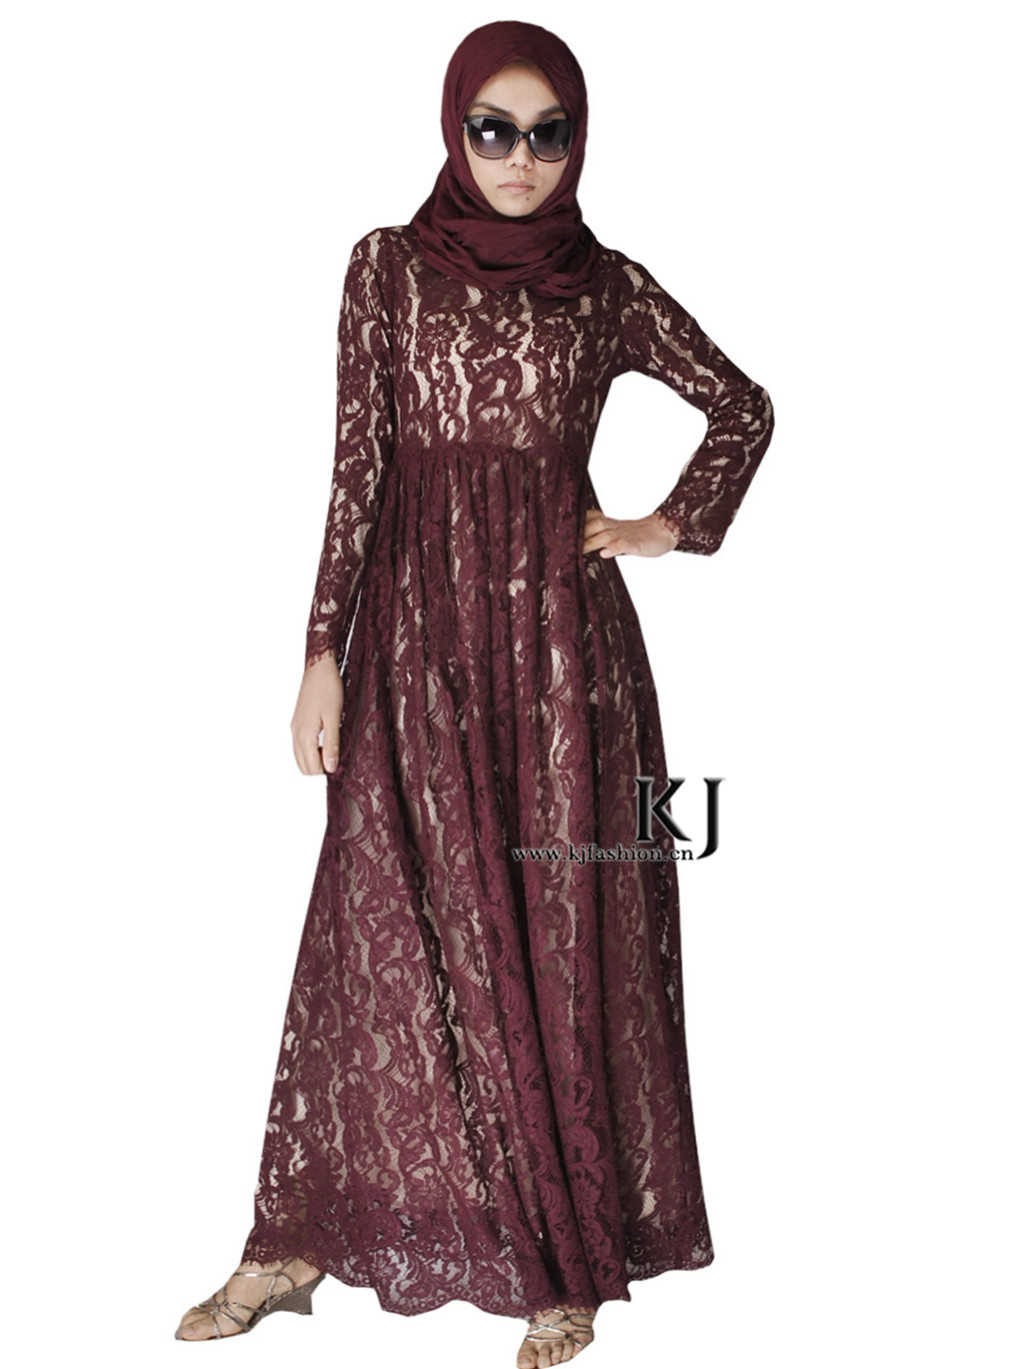 Robe Musulmane Real And Abayas Sale Adult Cotton Fashion Lace font b Islamic b font Clothing